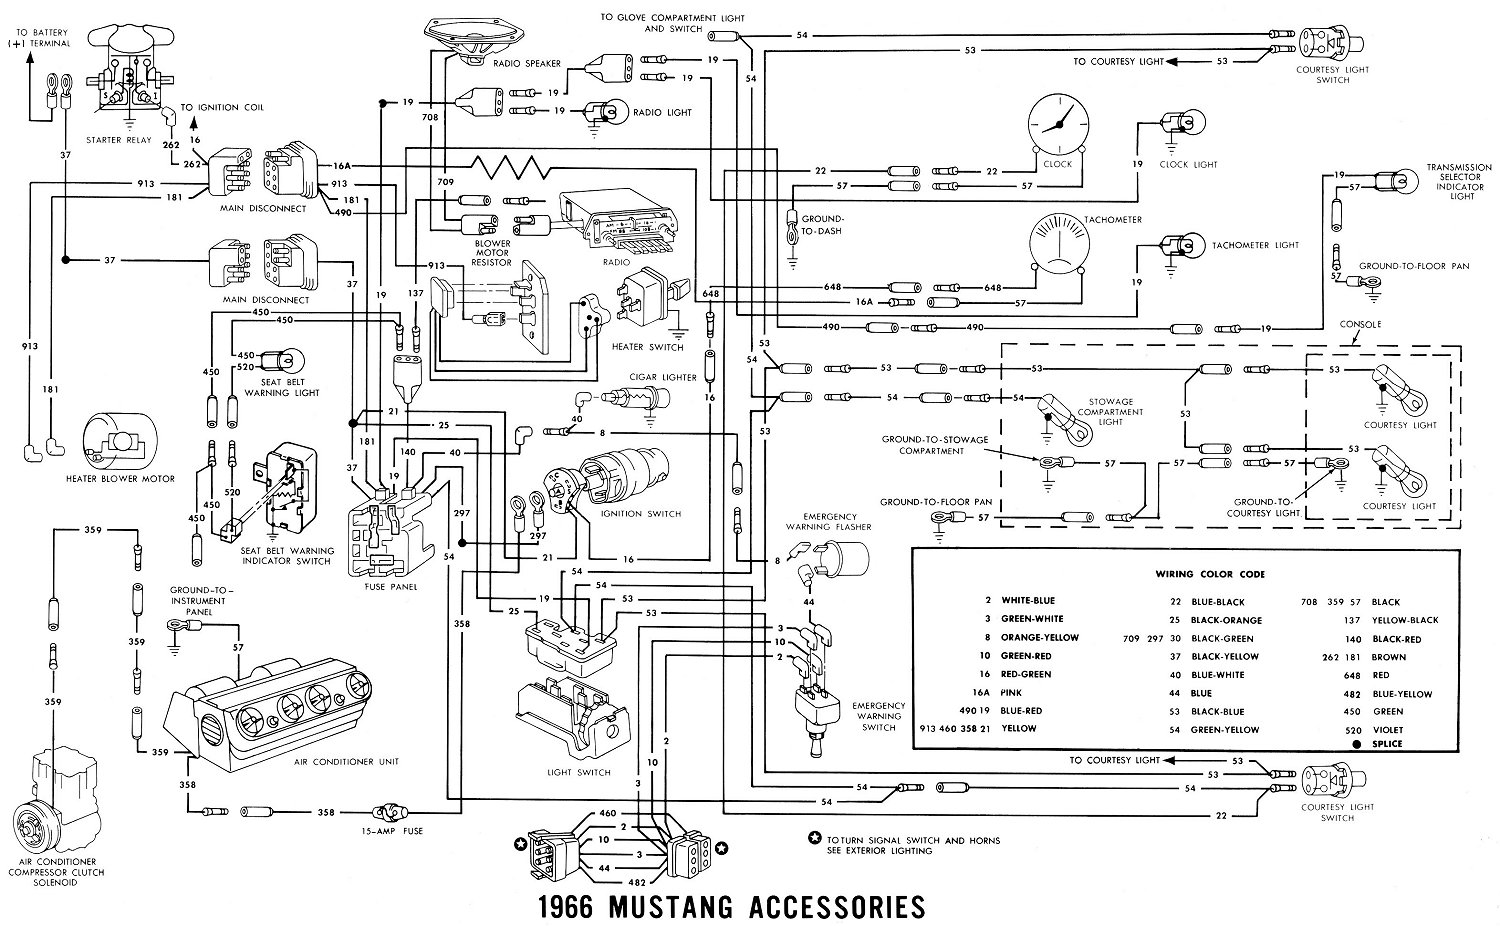 ford mustang diagram data wiring diagram rh 18 5 12 mercedes aktion tesmer de